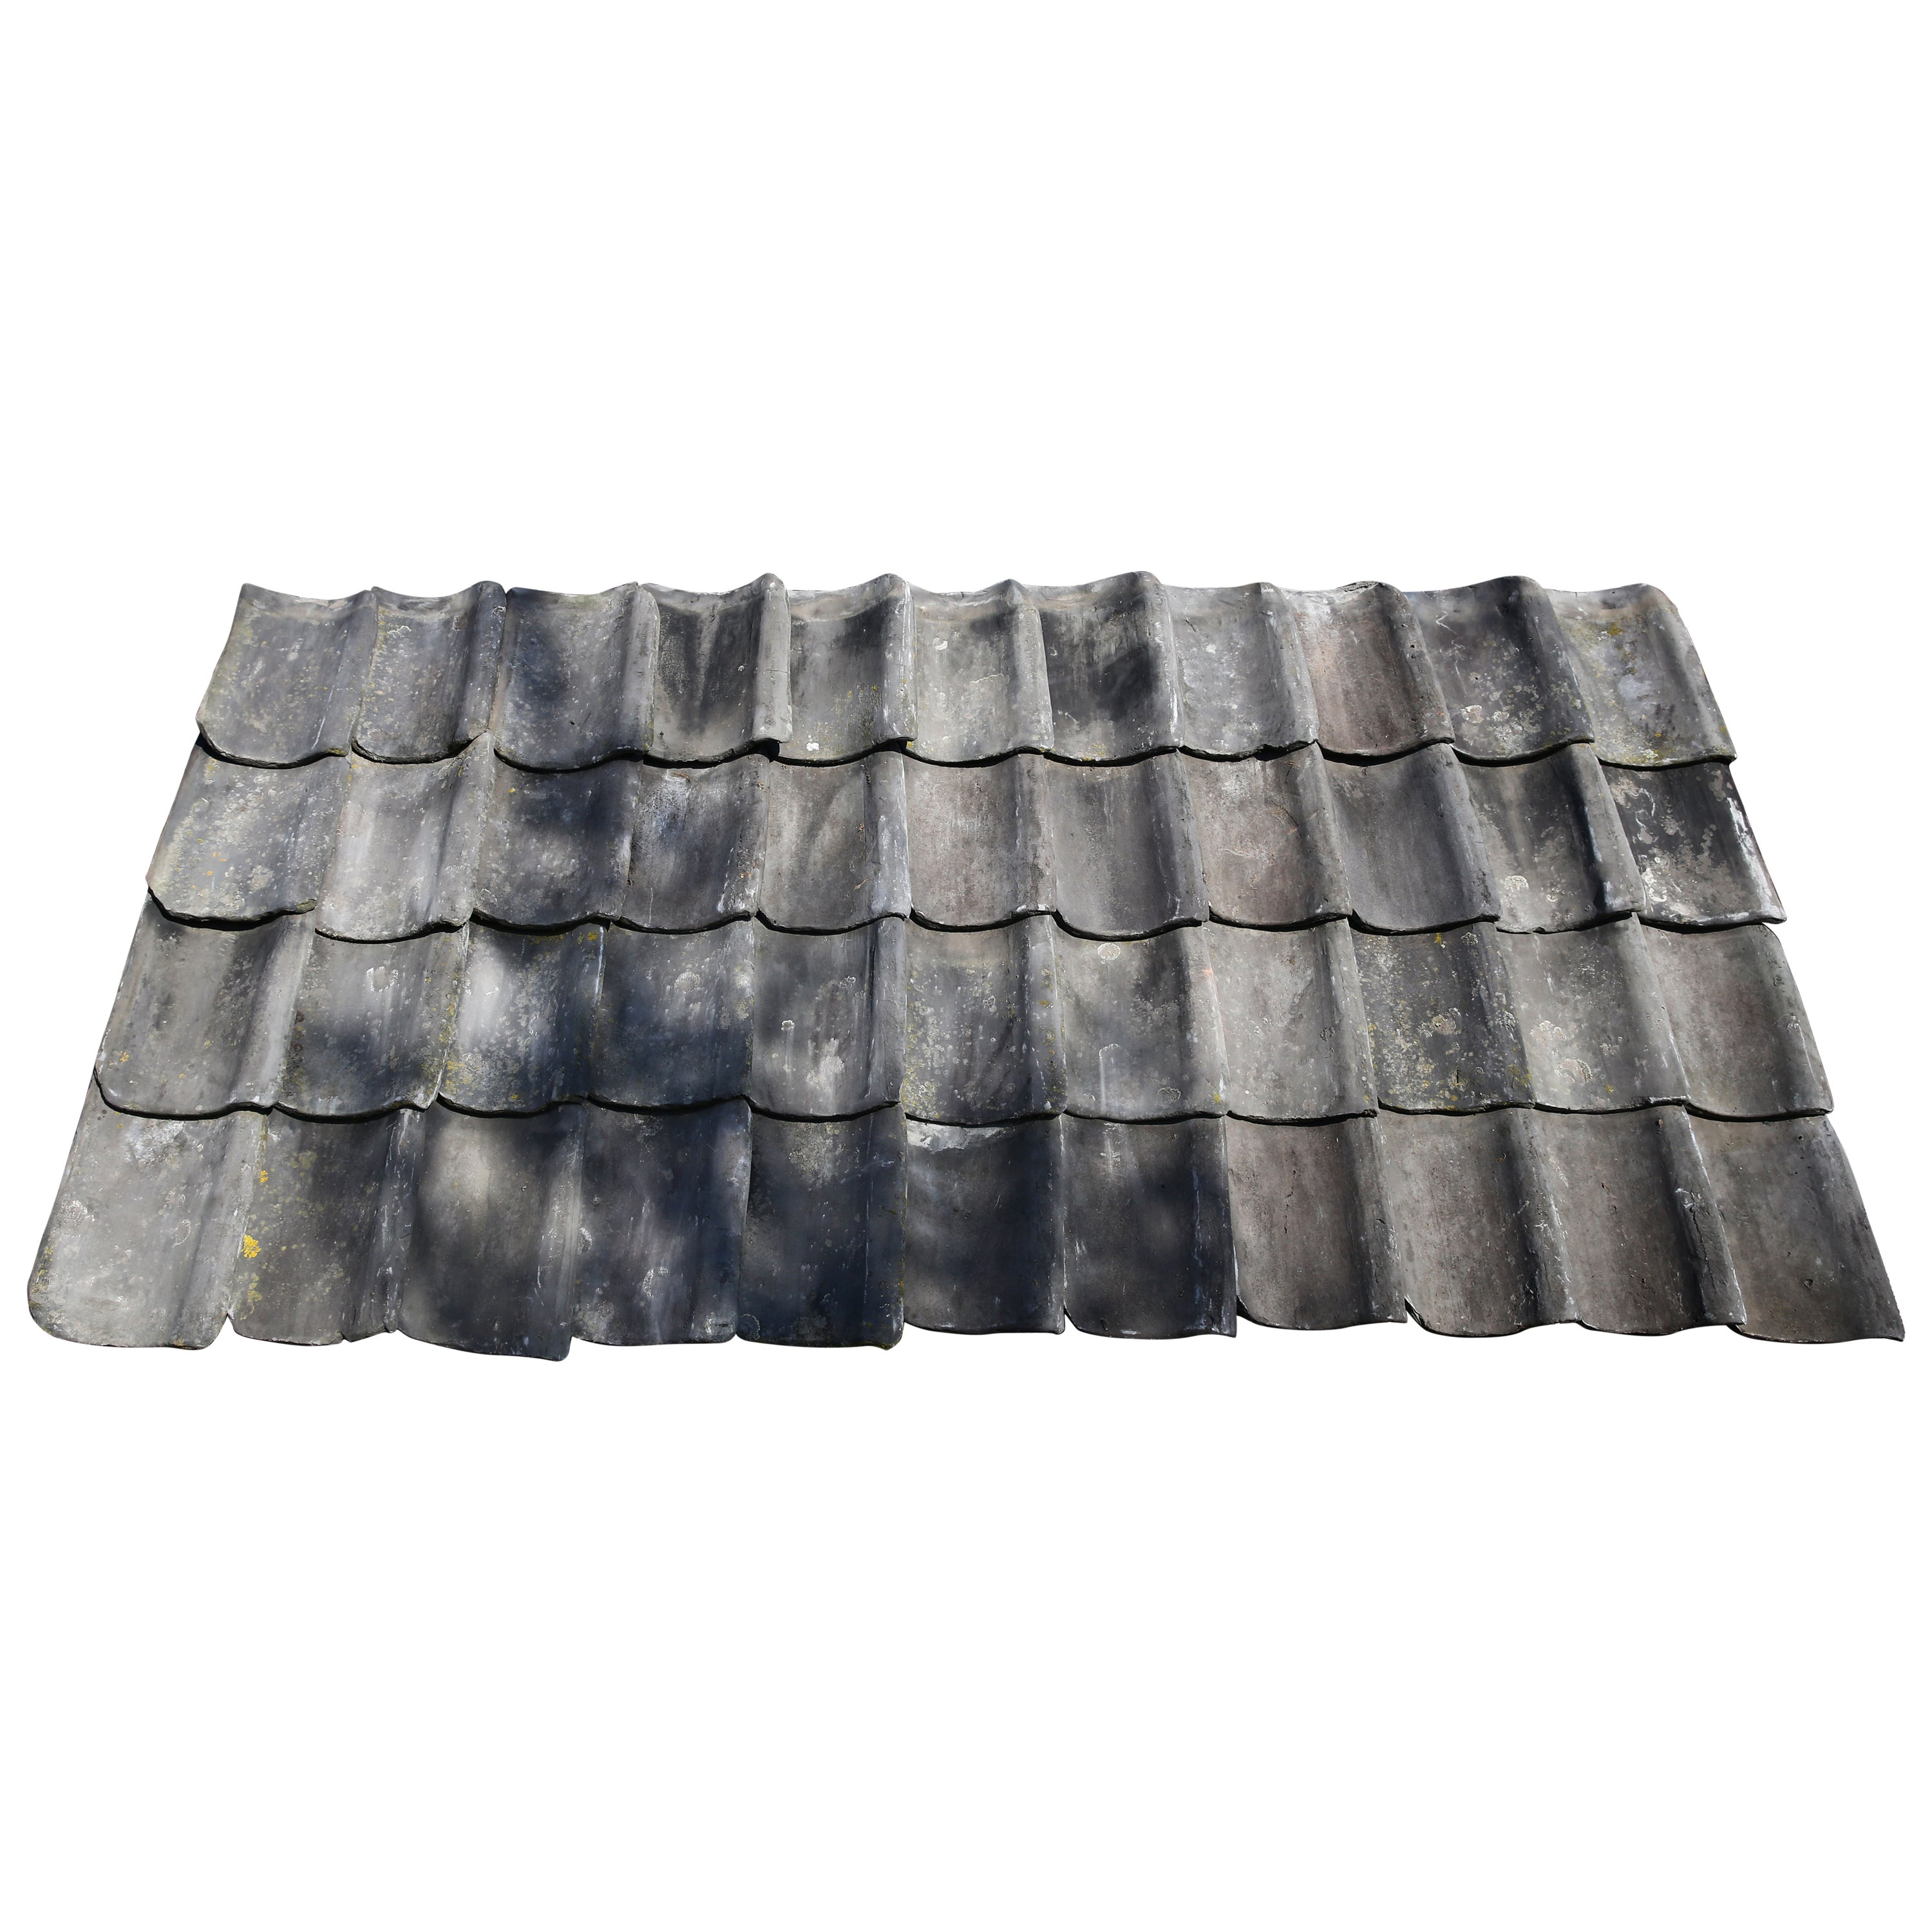 Old Blue Braised Roof Tiles Called 'Oude Holle'